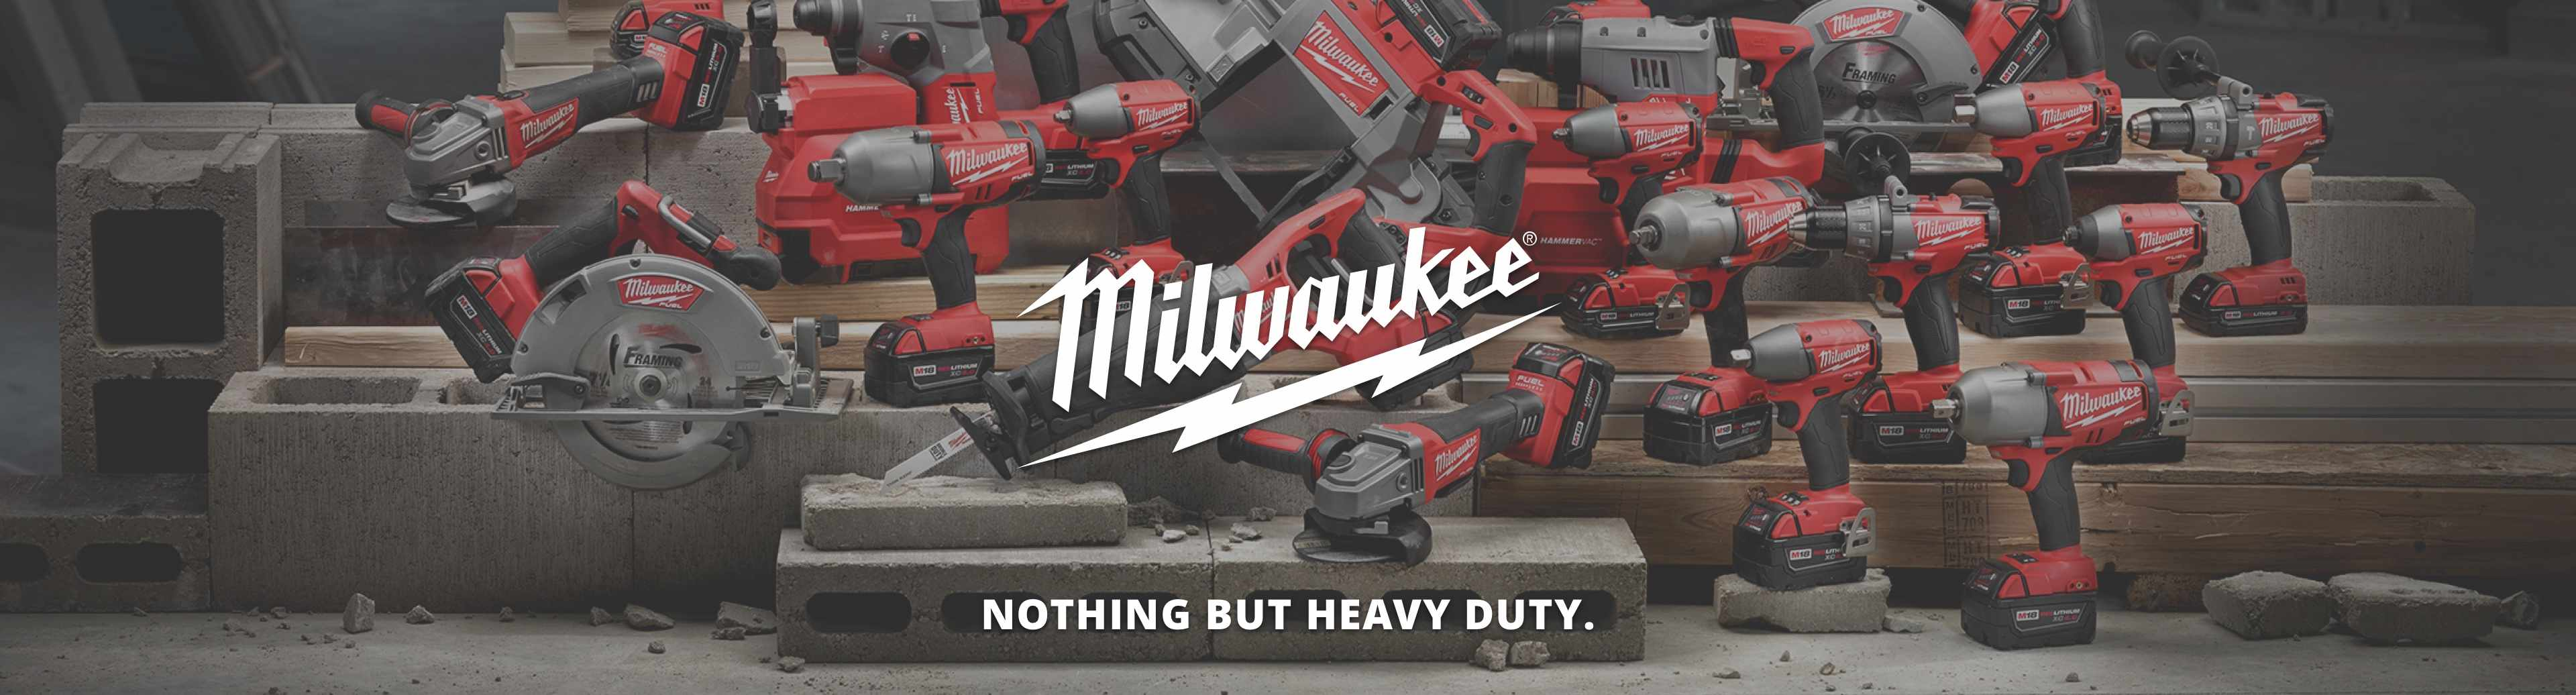 Shop Milwaukee power tools from Miller's Hardware